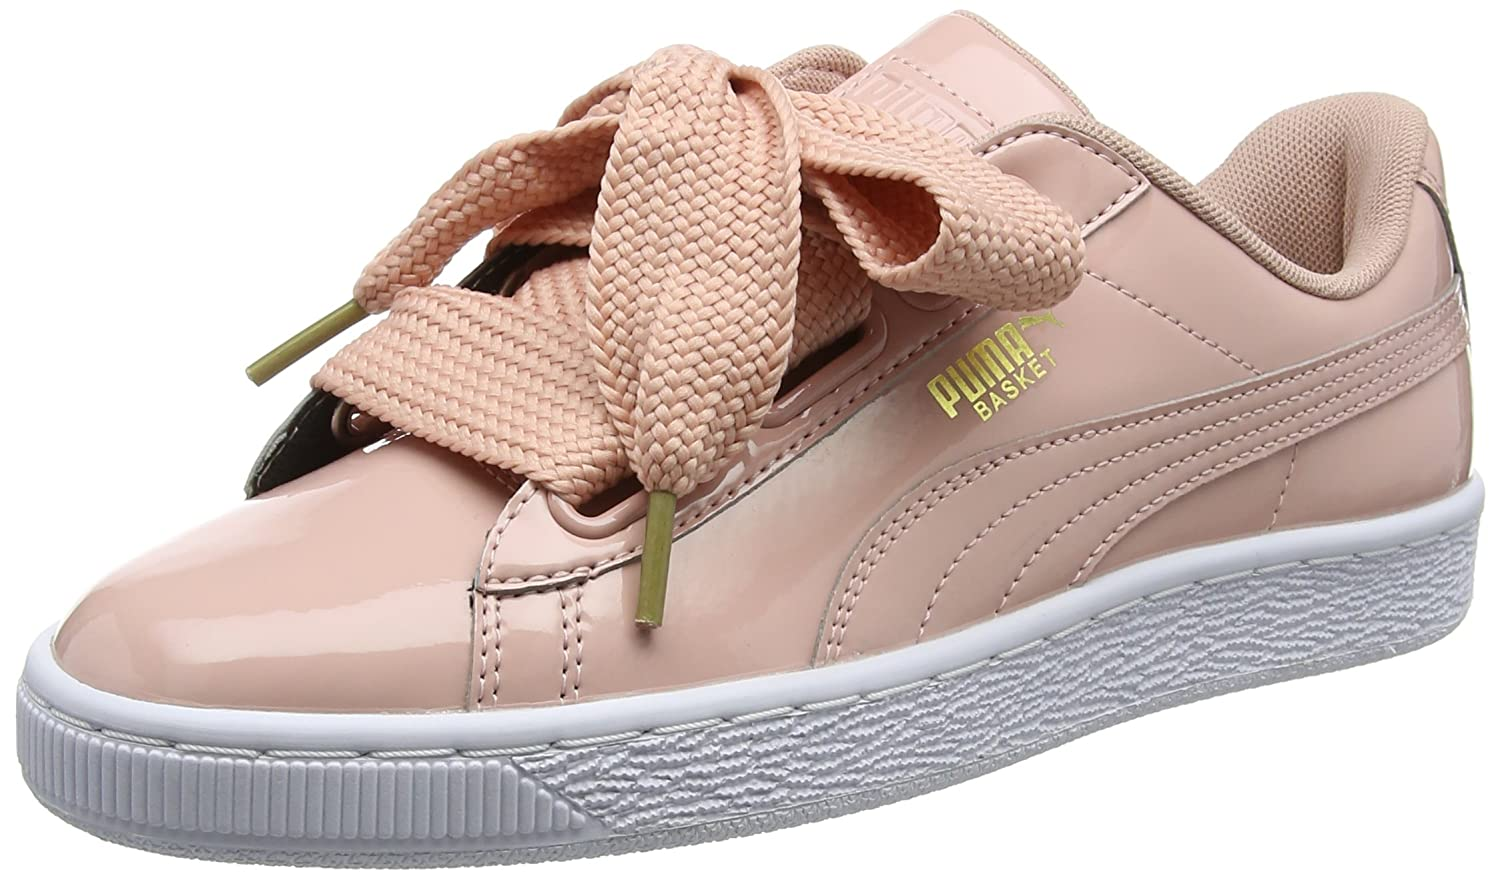 Puma Basket Heart Patent Patent Wn 19970 s, Sneakers Basses Puma Femme Beige (Peach Beige-peach Beige) ce2edcb - shopssong.space